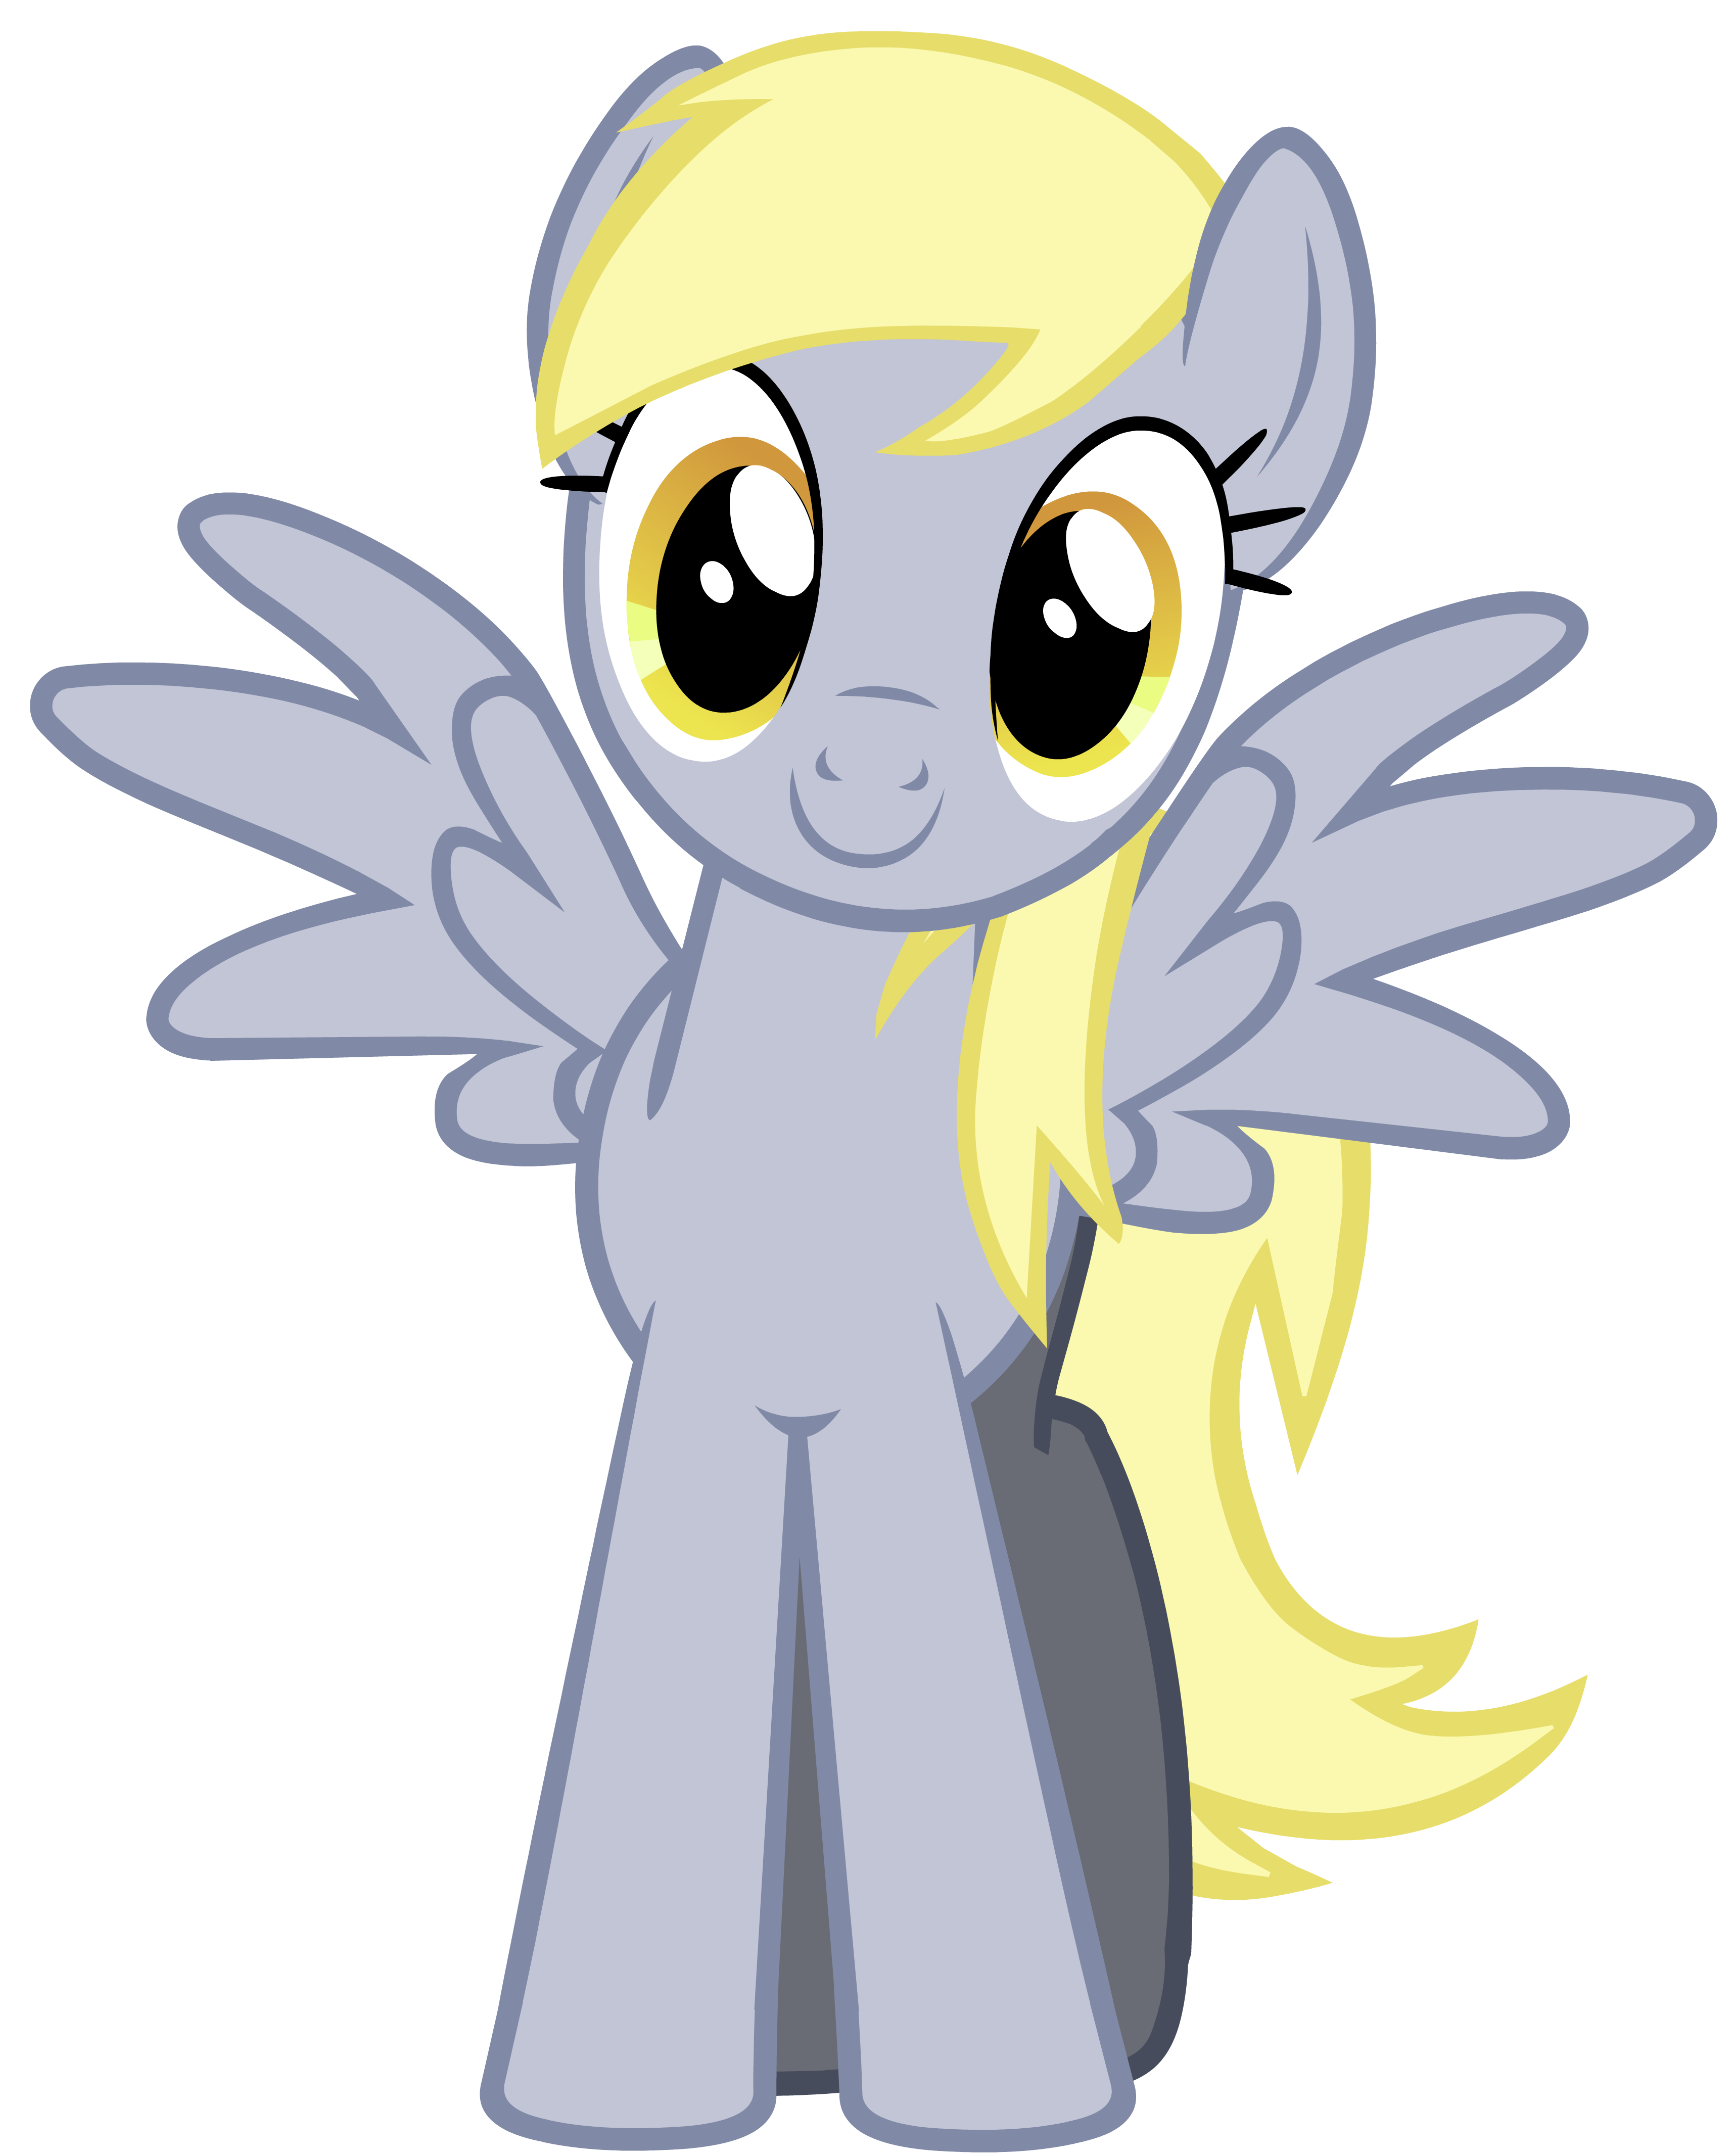 Vector of Derpy Hooves with her eyes fixed. | Derpy hooves ...